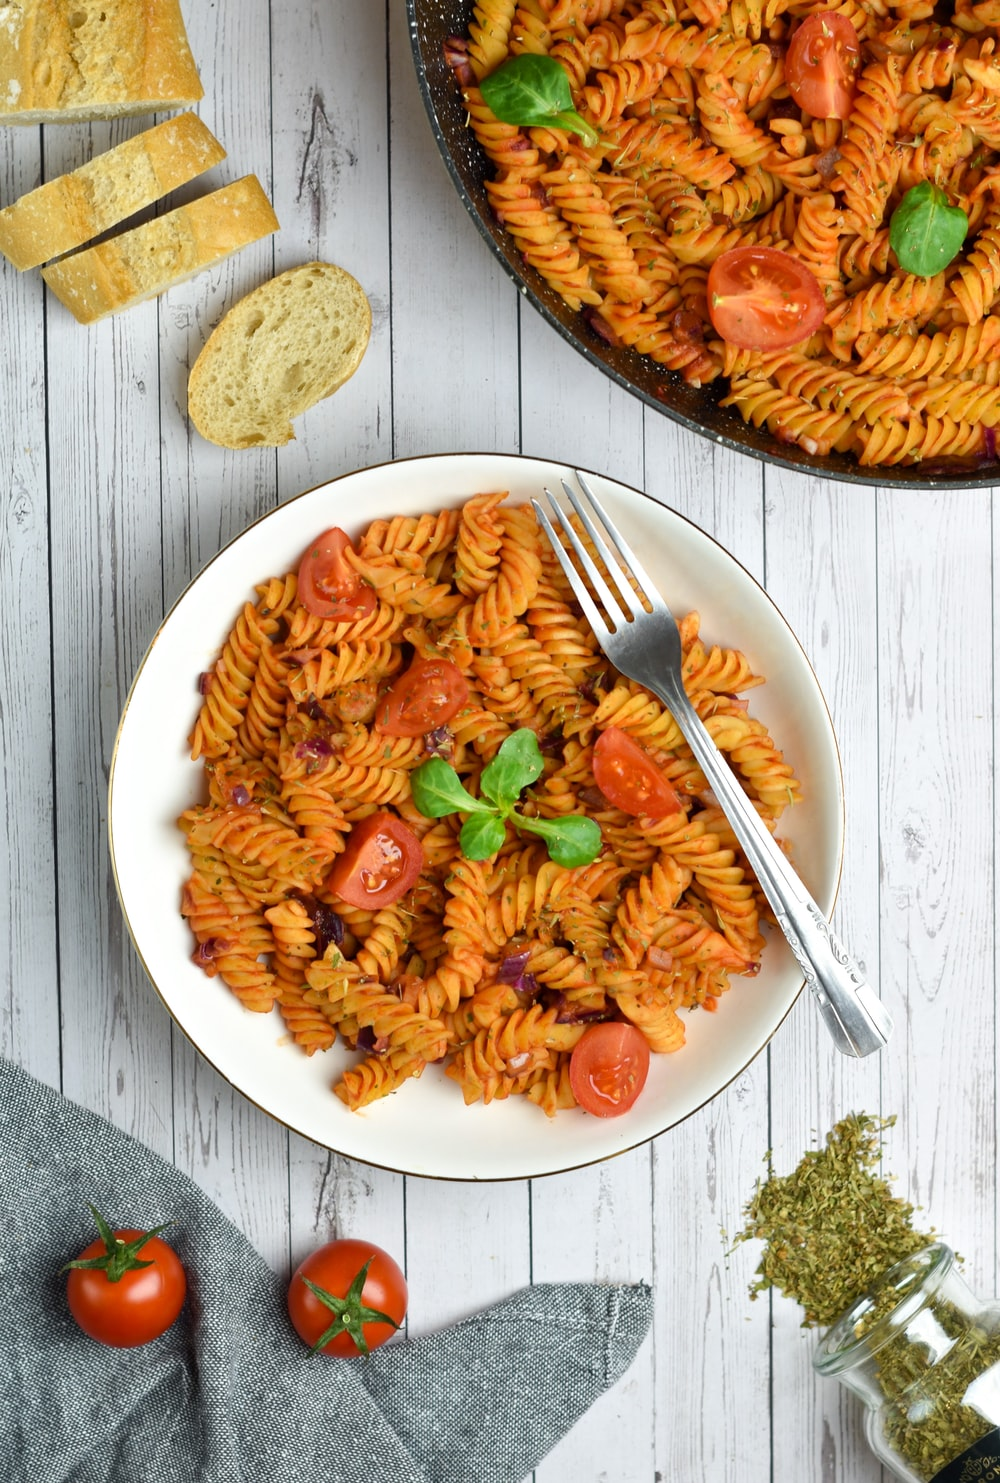 pasta with sauce on white ceramic plate